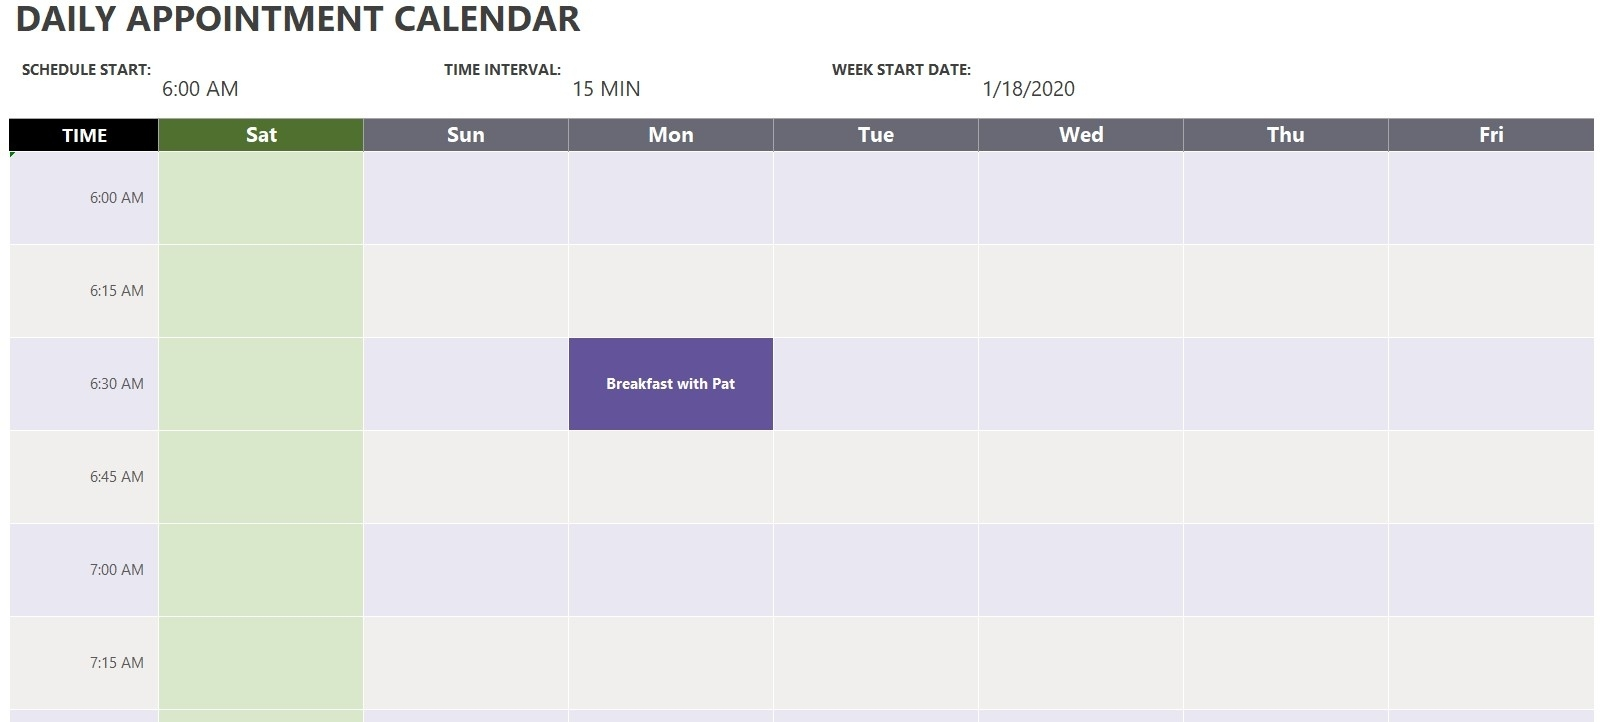 Daily Appointment Calendar Template | Excel Templates 7 Day Appointment Calendar Template